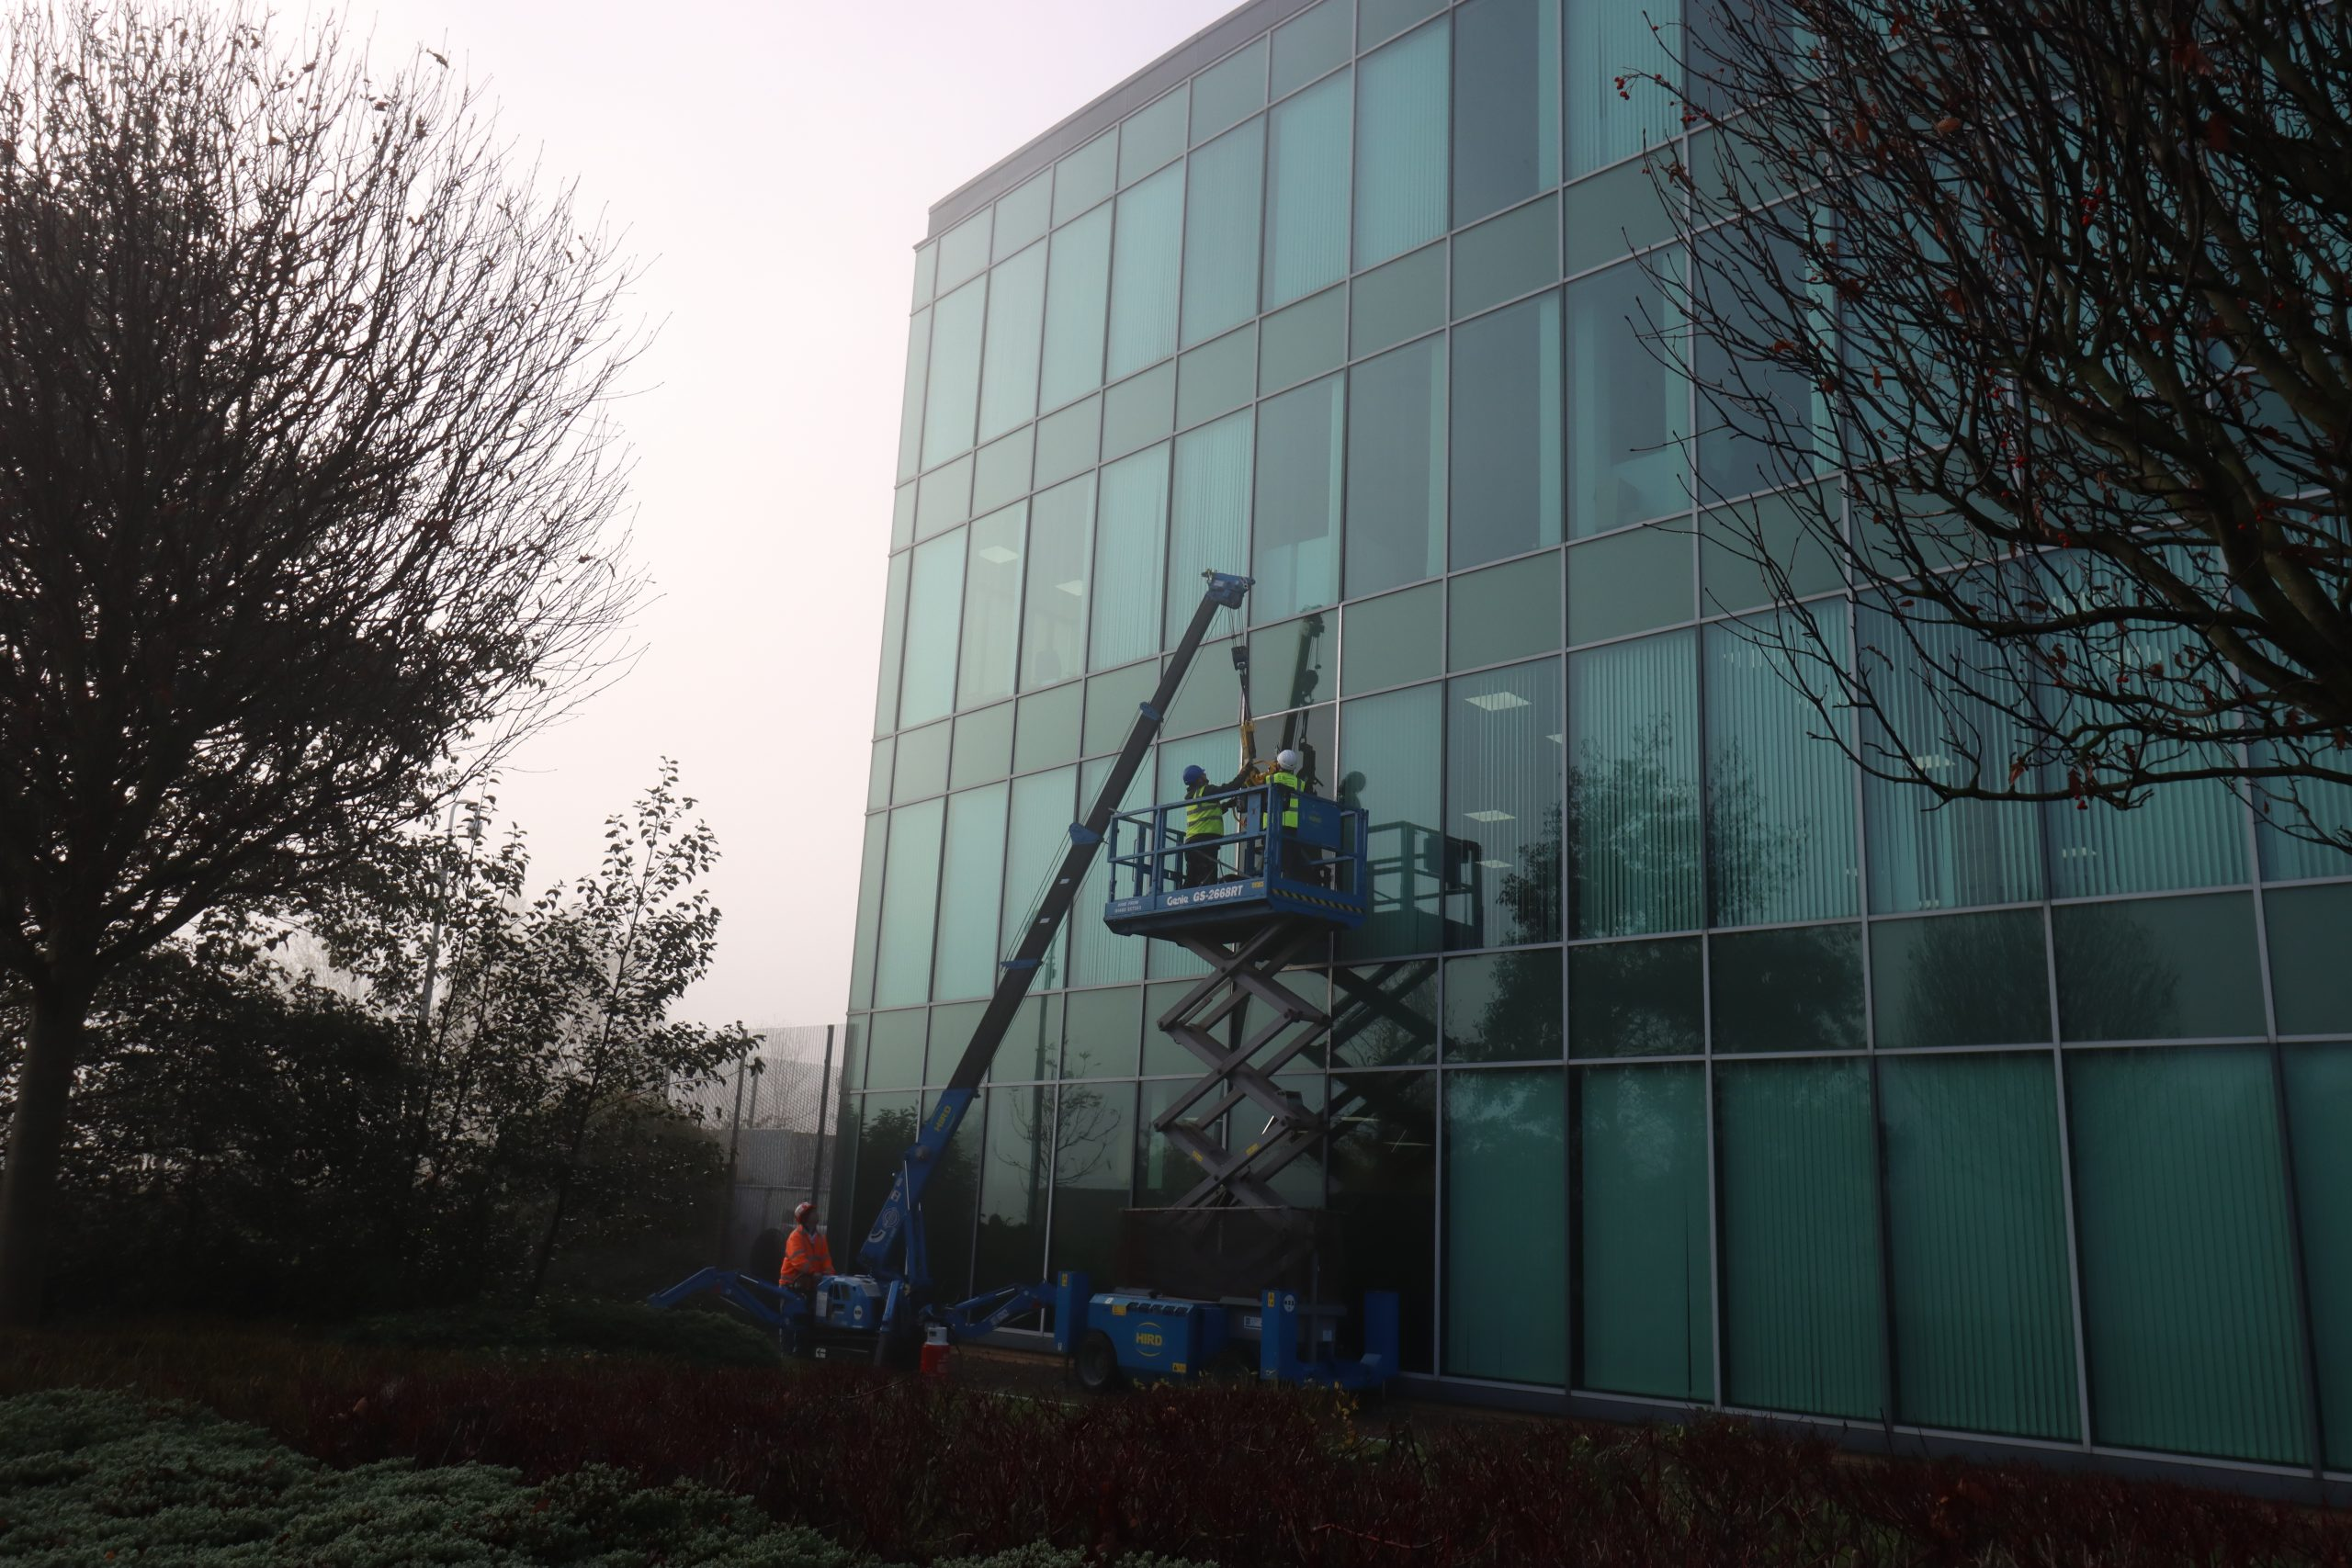 Glazed Curtain Wall Repair – Newcastle upon Tyne